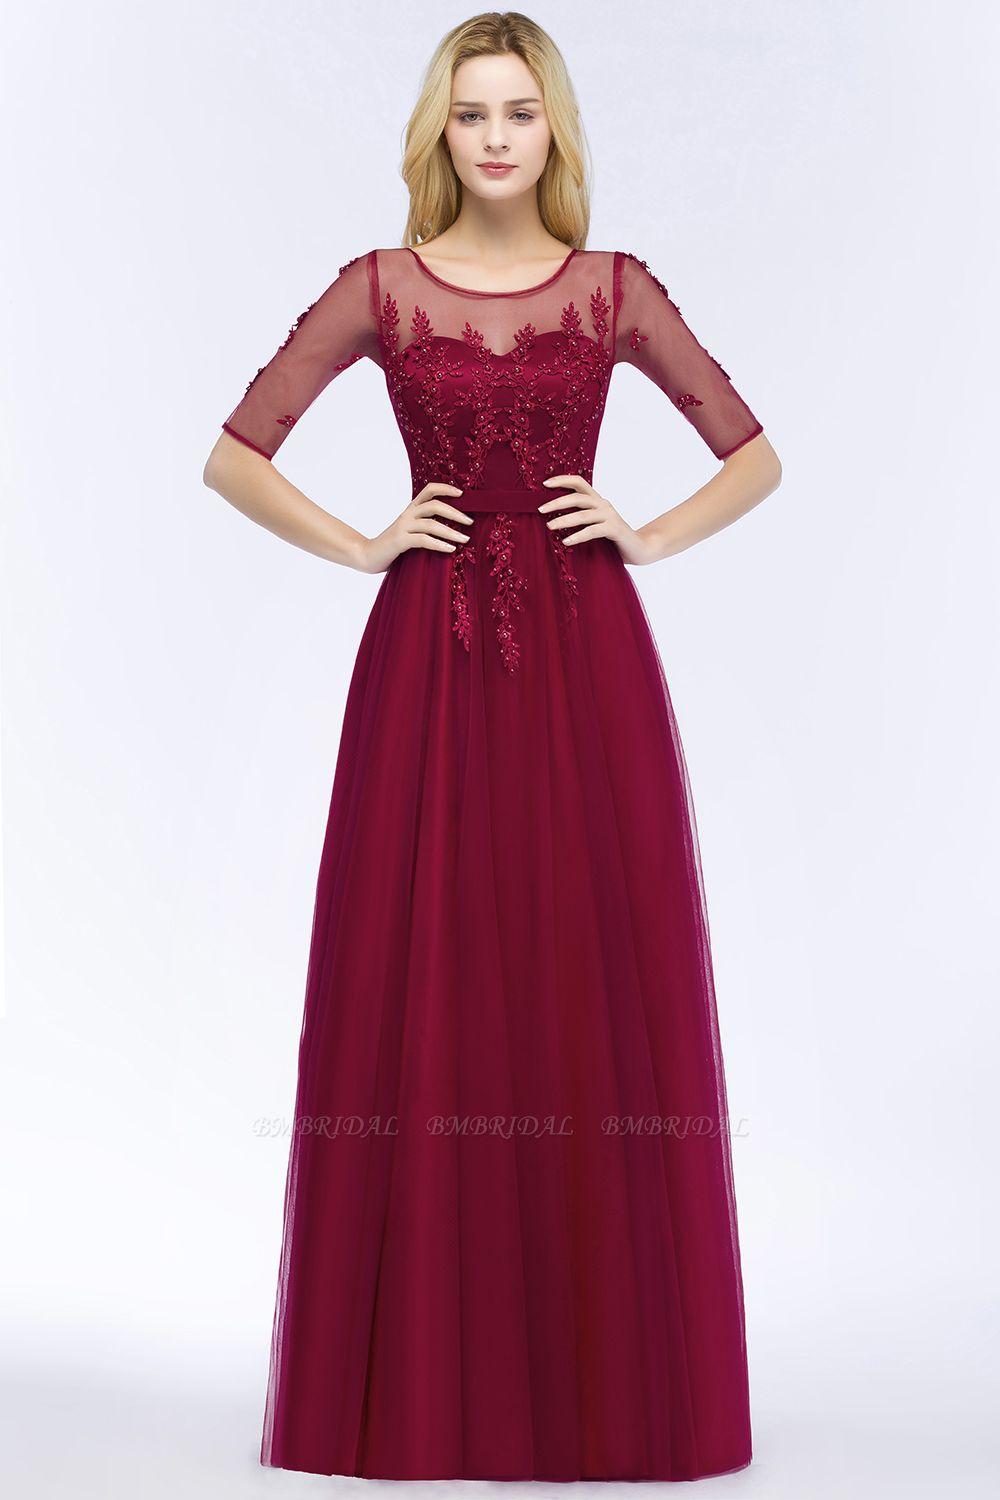 BMbridal A-line Floor Length Appliques Tulle Bridesmaid Dress with Sleeves